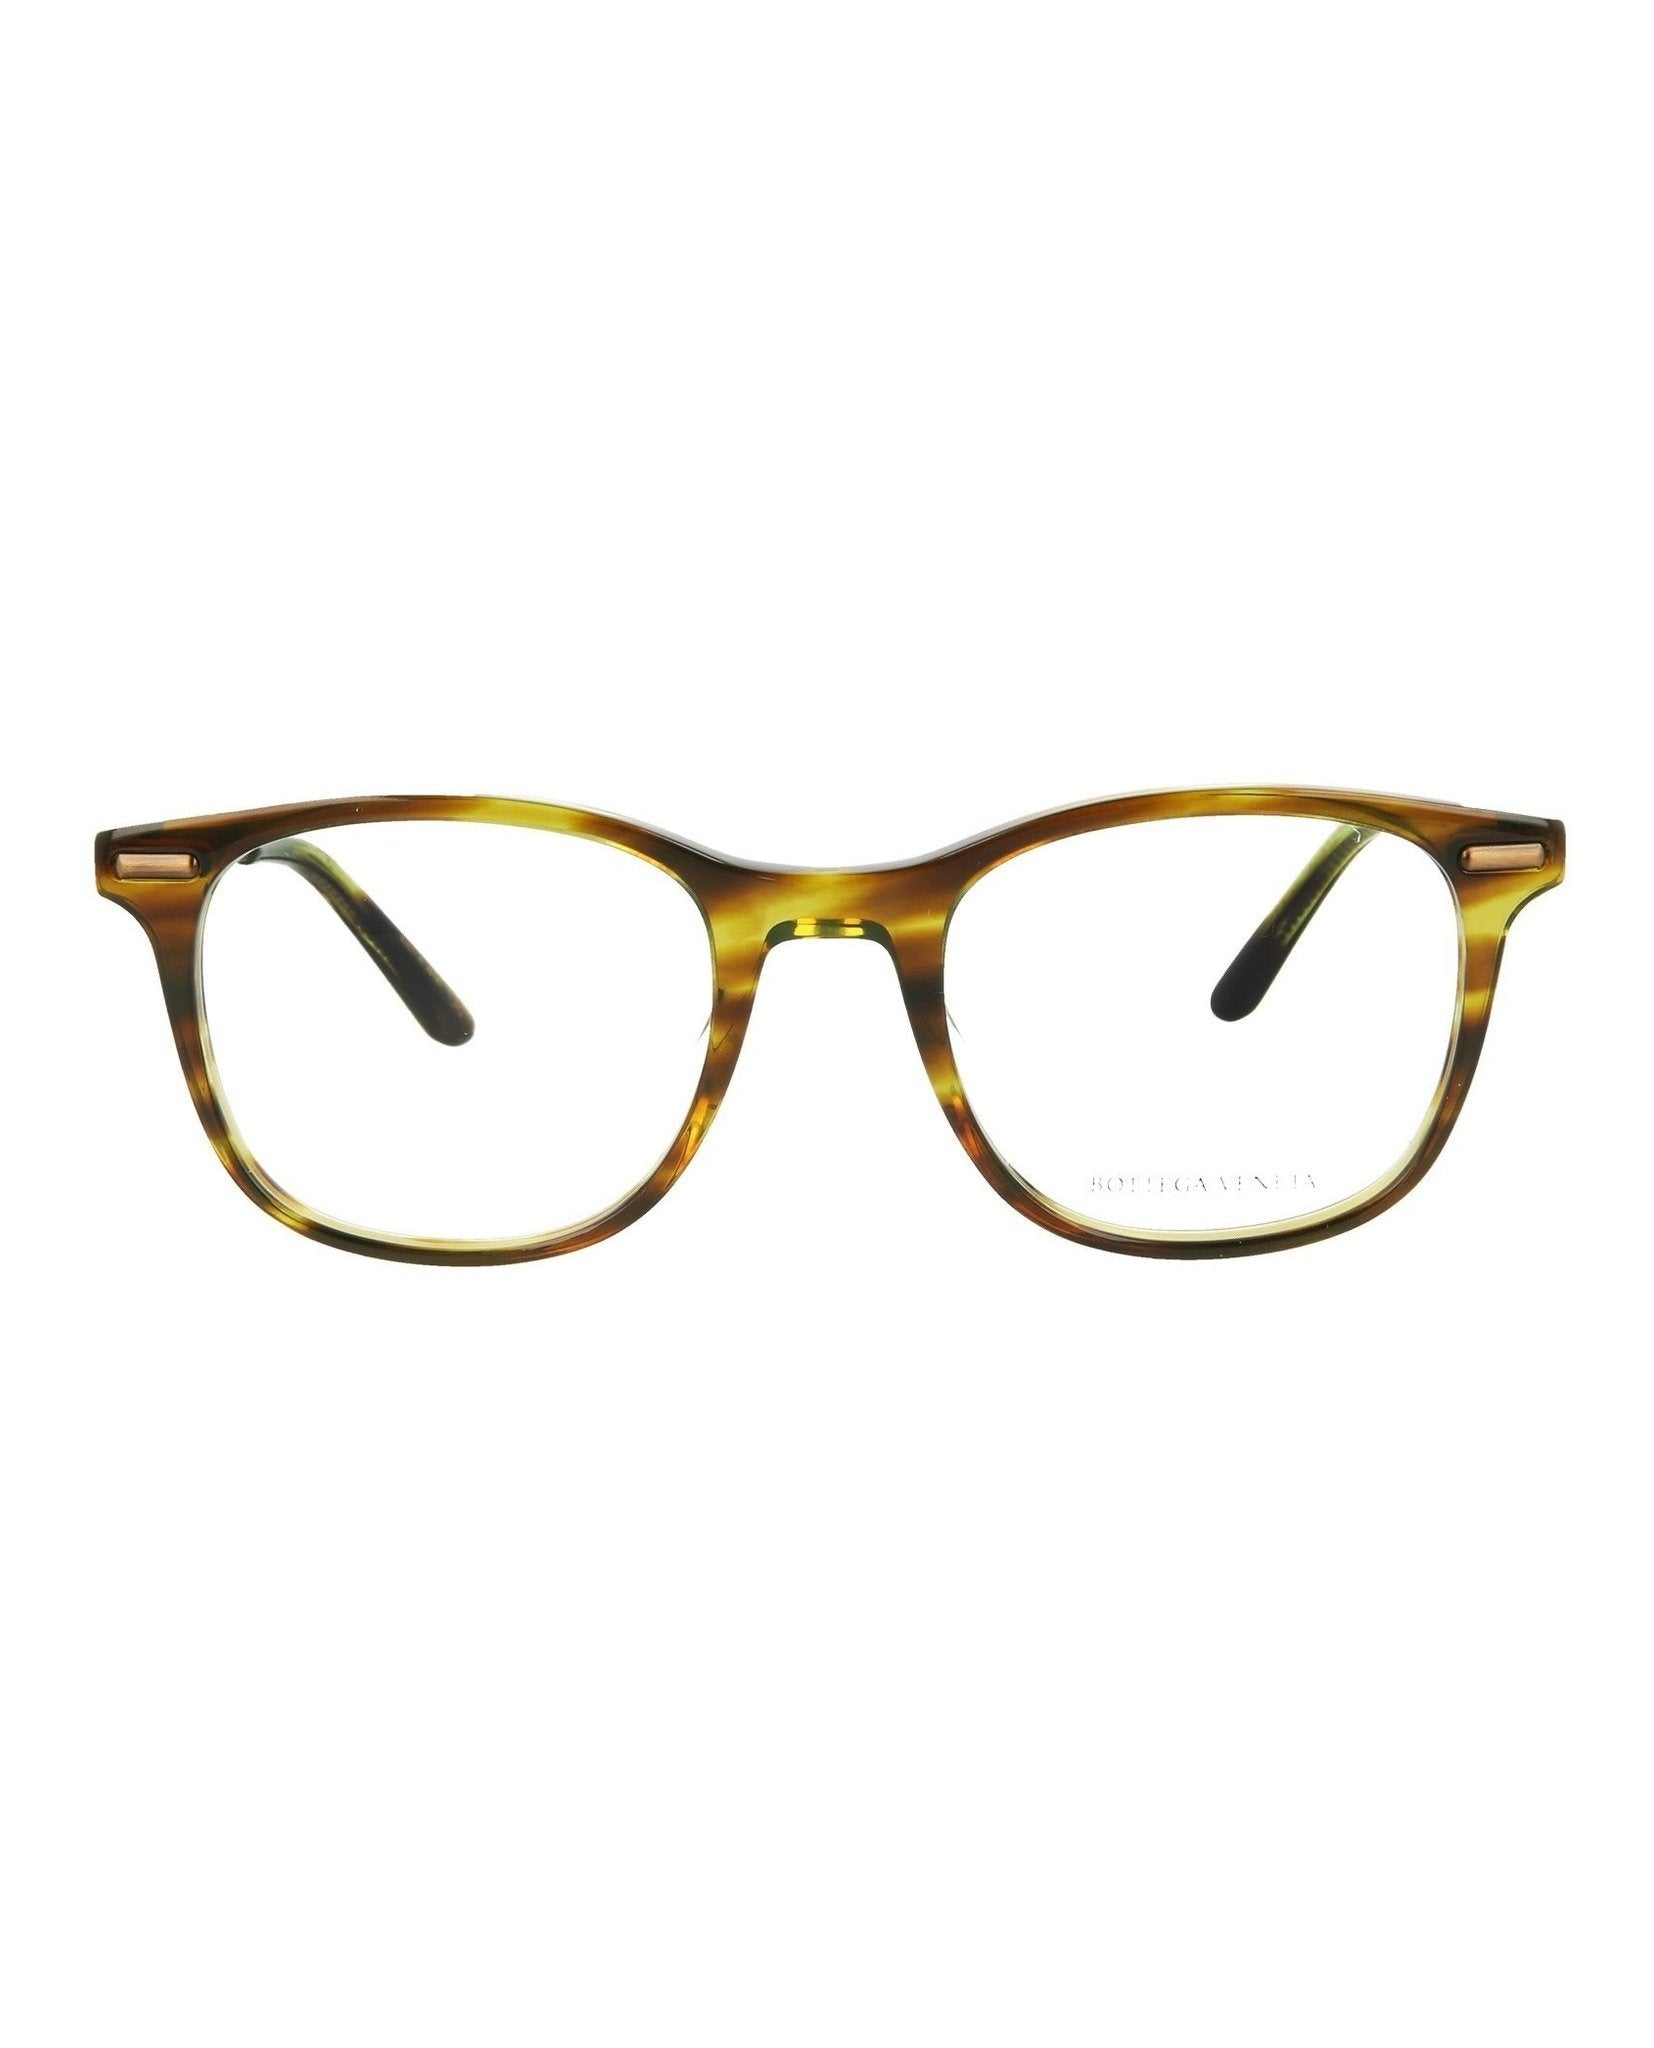 Bottega Veneta Square/Rectangle Optical Frames